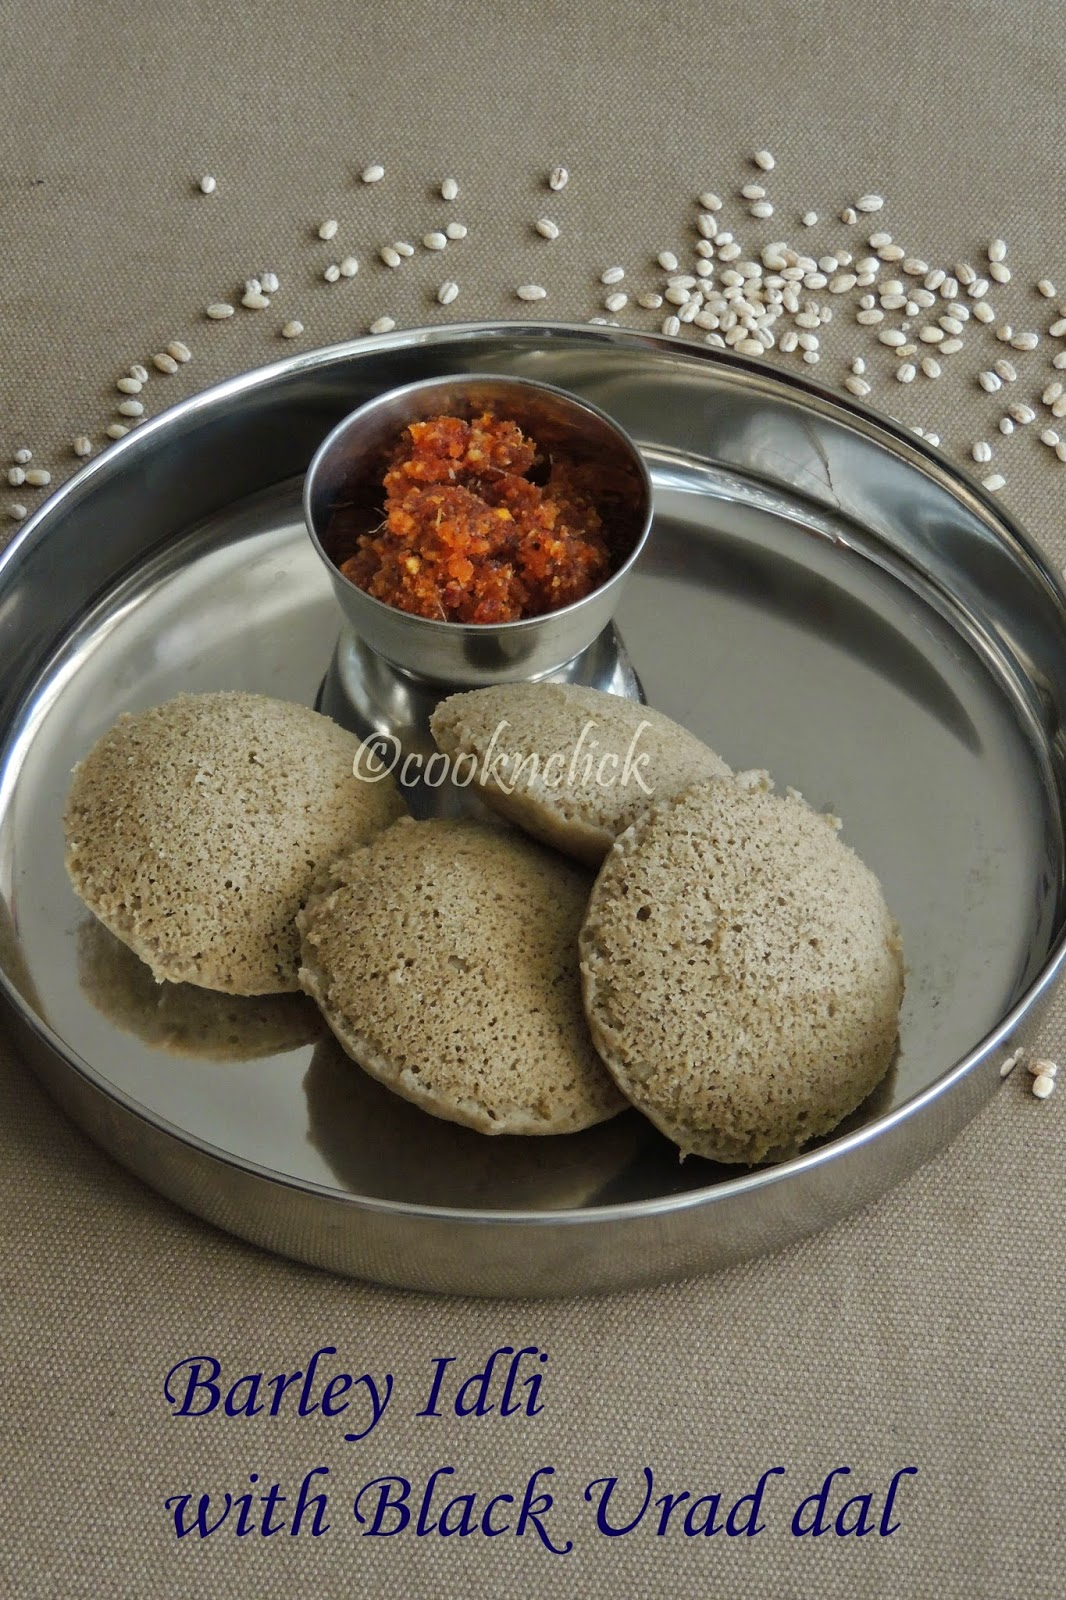 Barley Idli with whole black urad dal